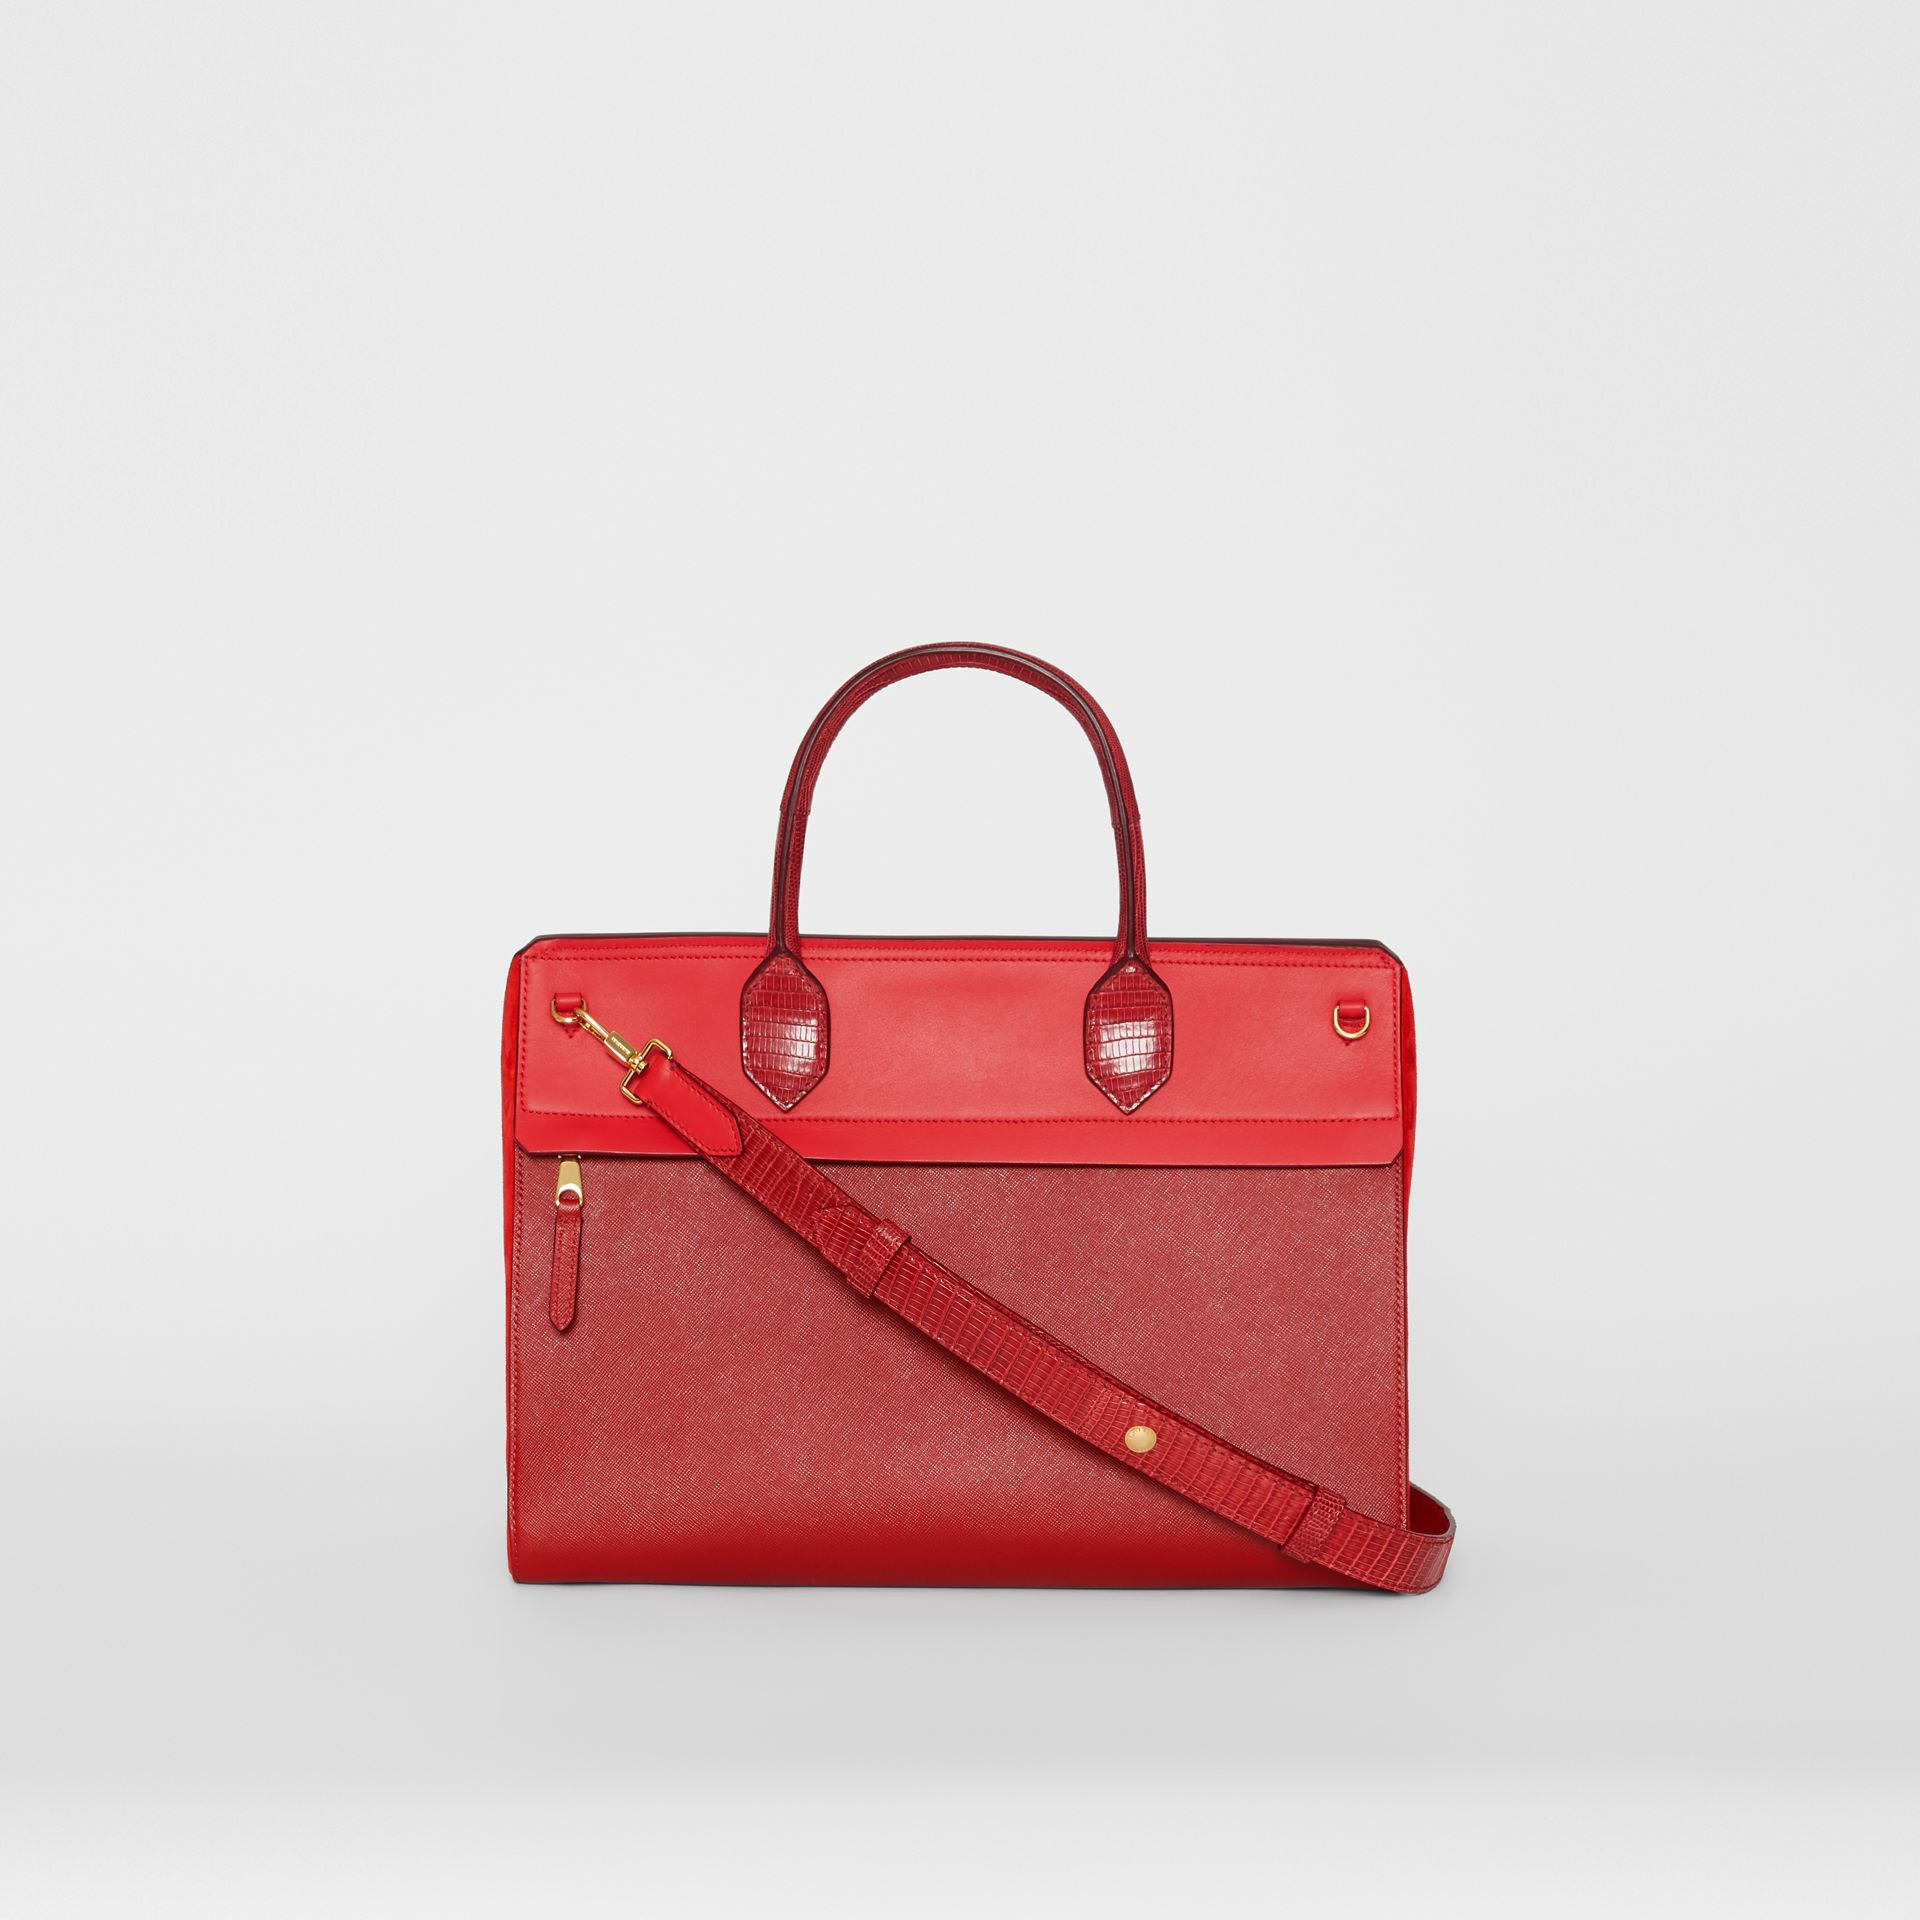 Small Leather and Suede Elizabeth Bag in Bright Military Red - Women | Burberry United States - gallery image 7